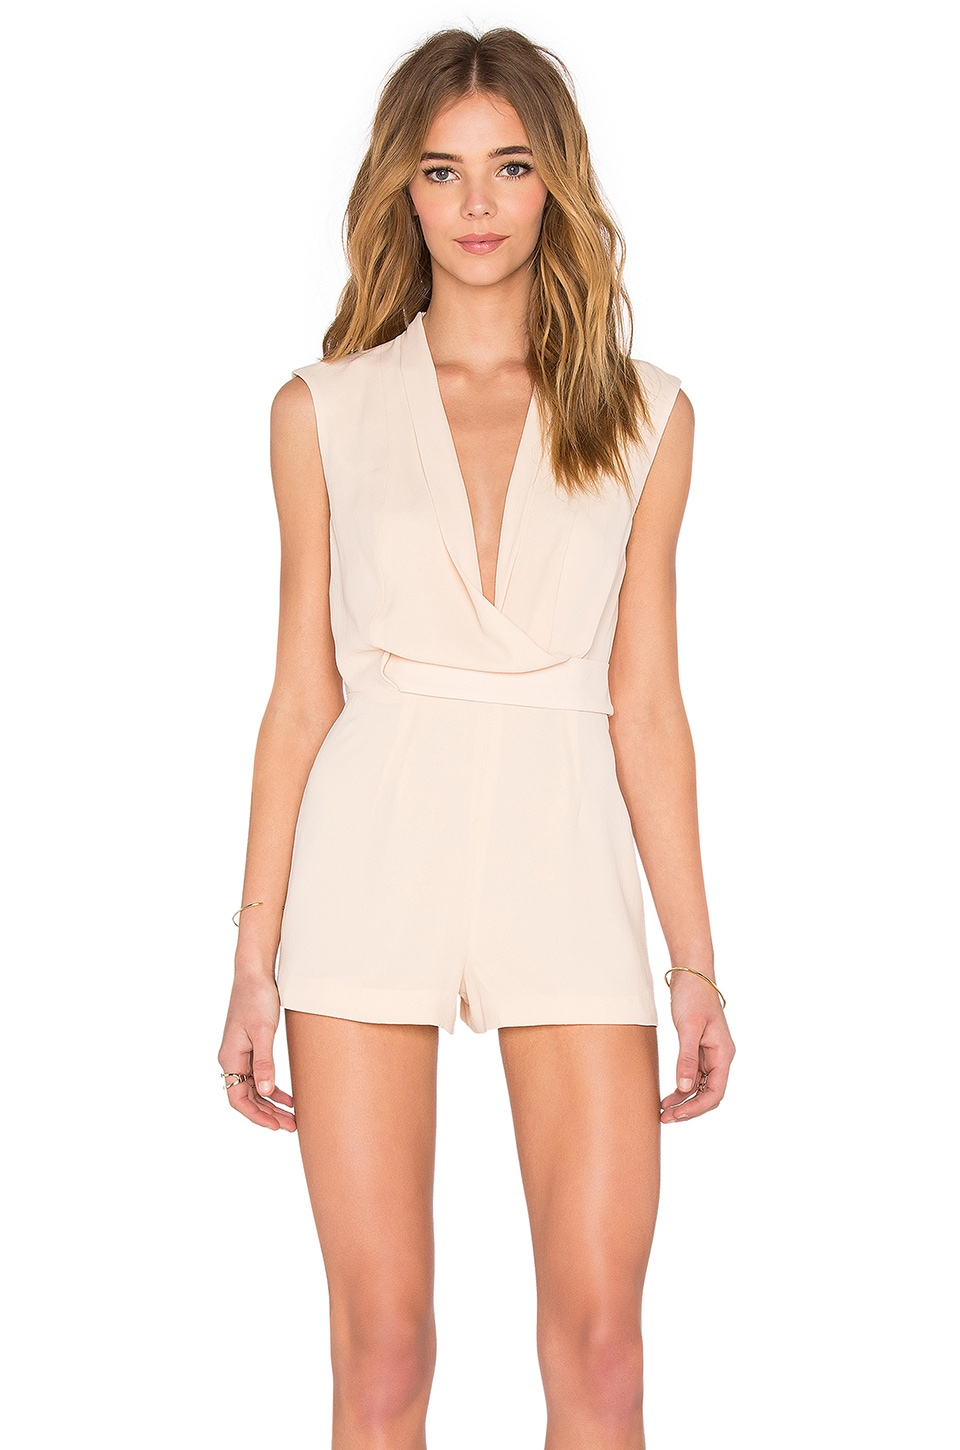 Finders Keepers Dreaming Of You Playsuit in Beige